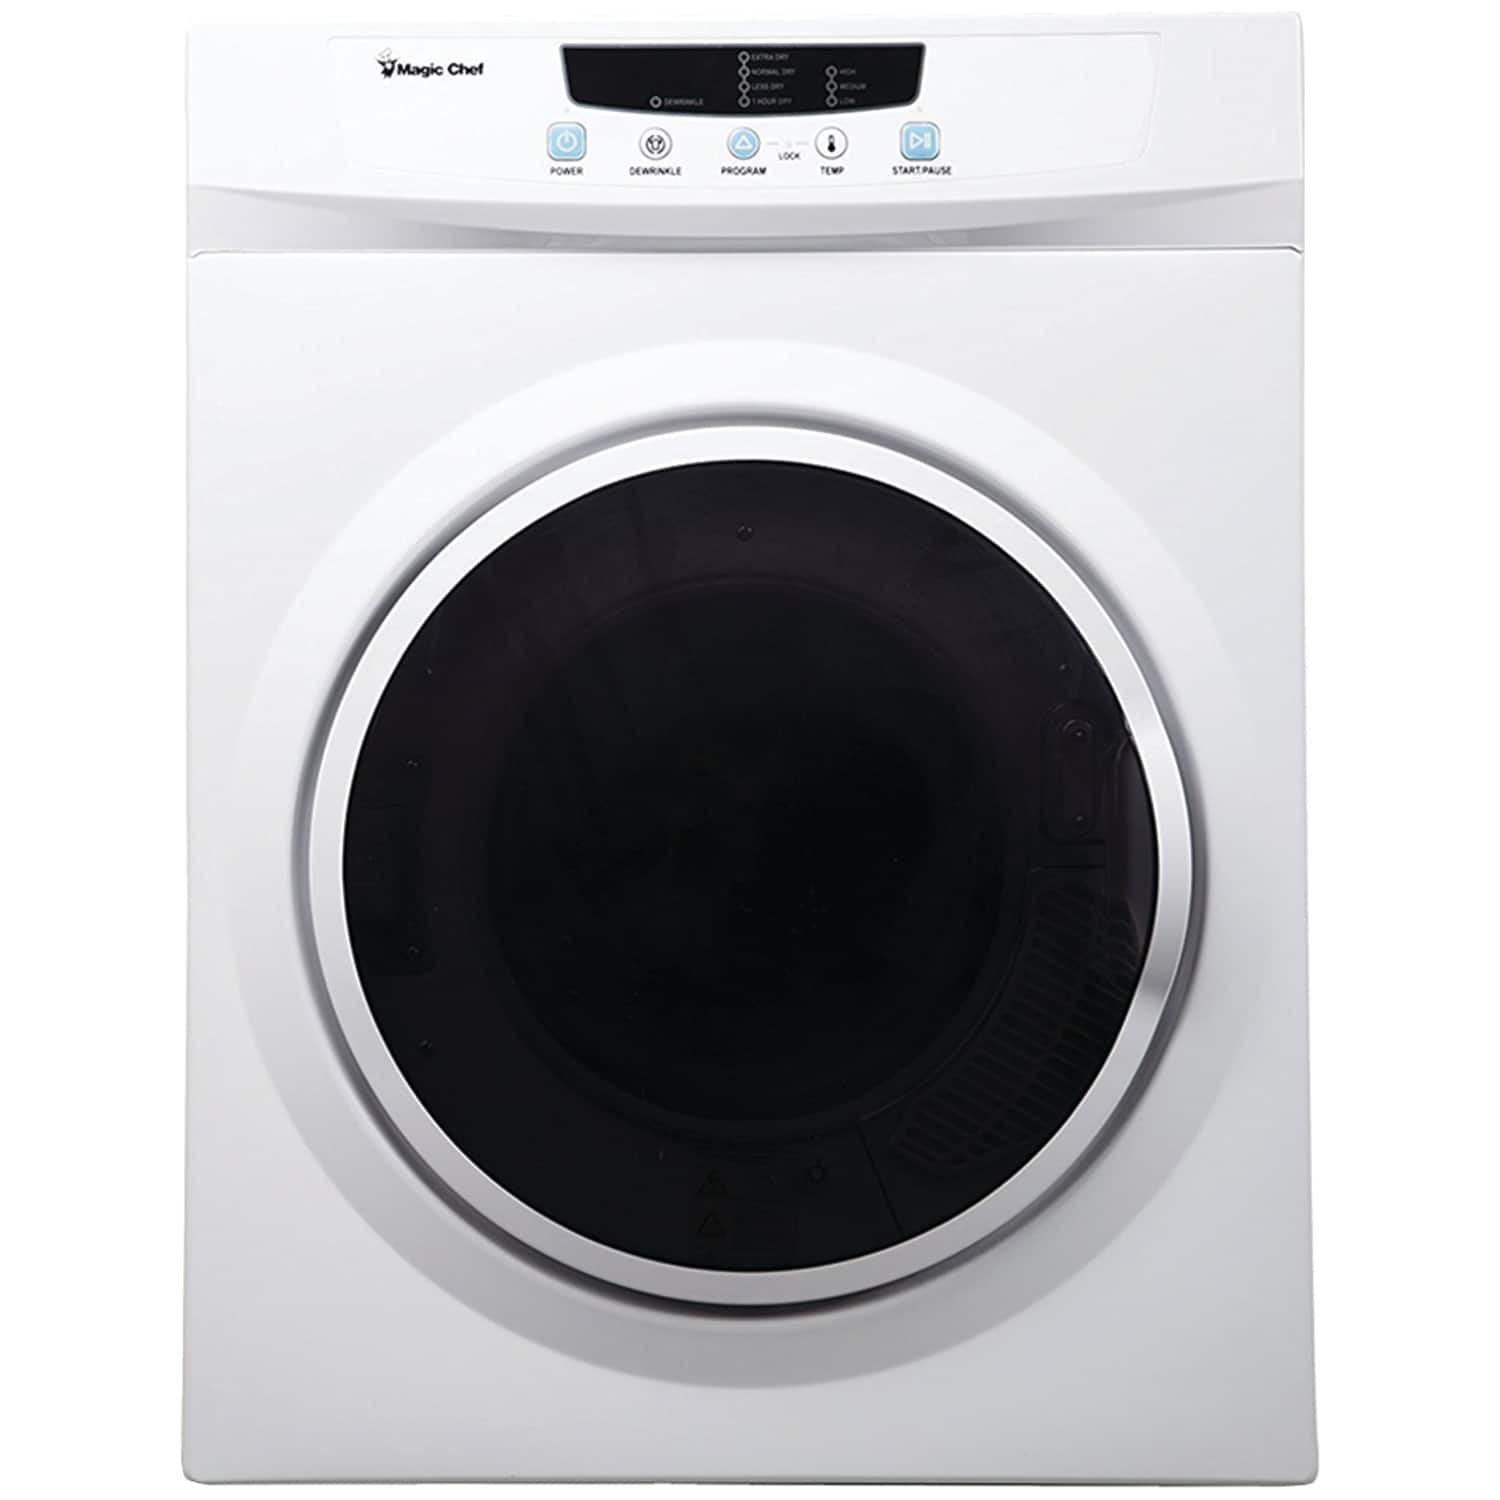 Magic Chef 3.5 cu ft Compact Electric Dryer, White $$199 - PM Staples